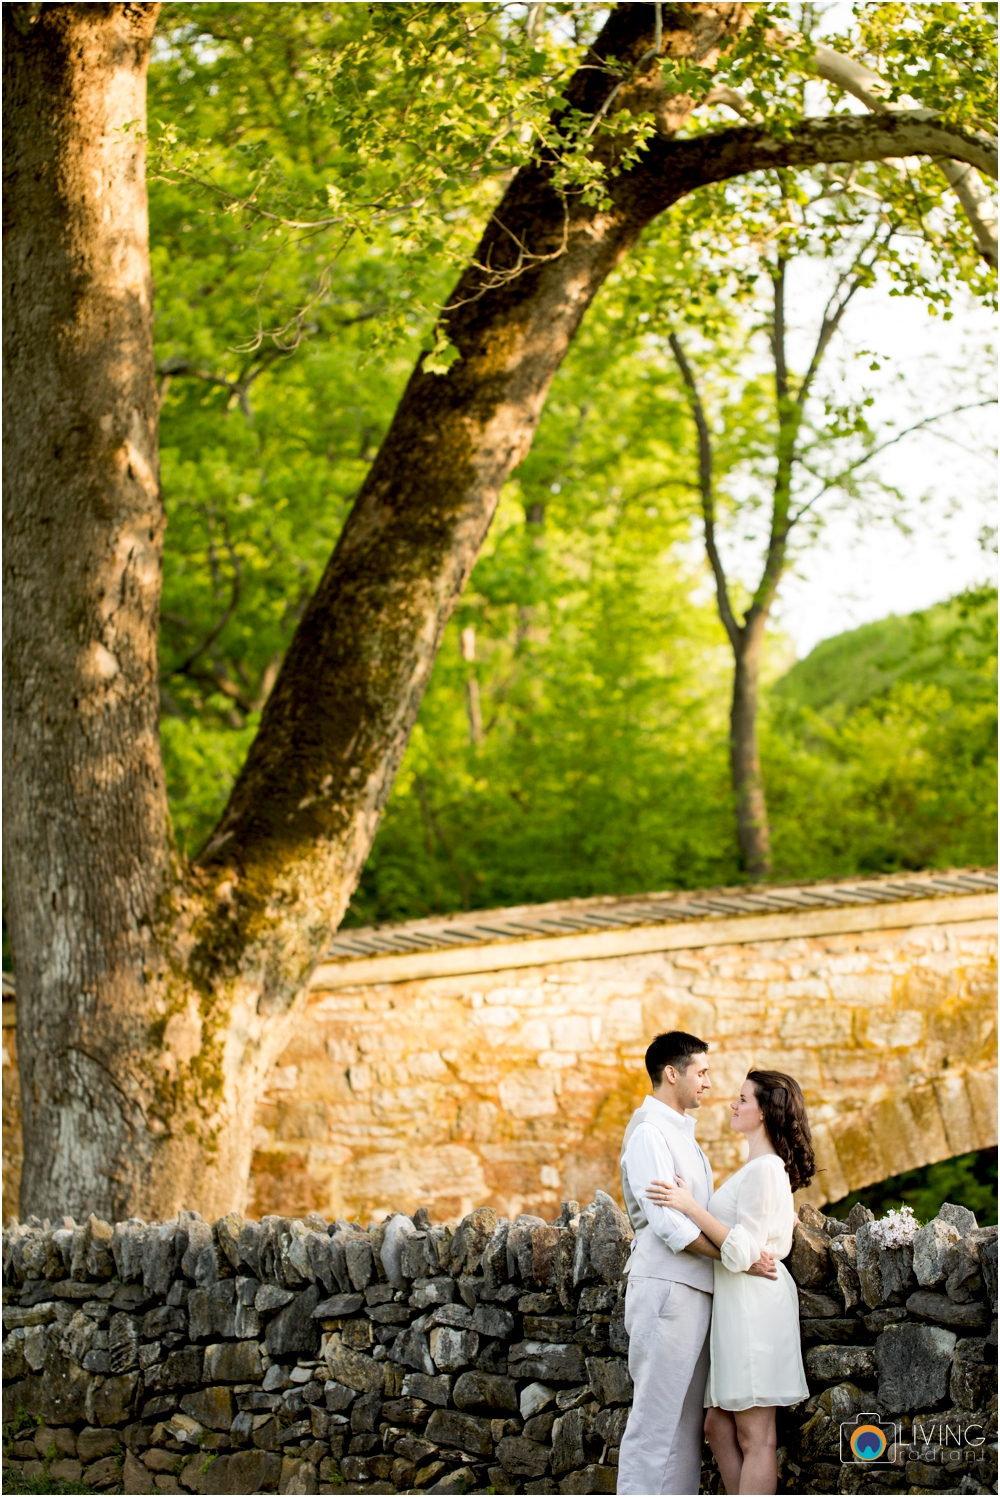 heather-carlos-outdoor-Antietam-National-Battlefield-engagement-session-living-radiant-phootgraphy-best-maryland-wedding-photographer_0014.jpg